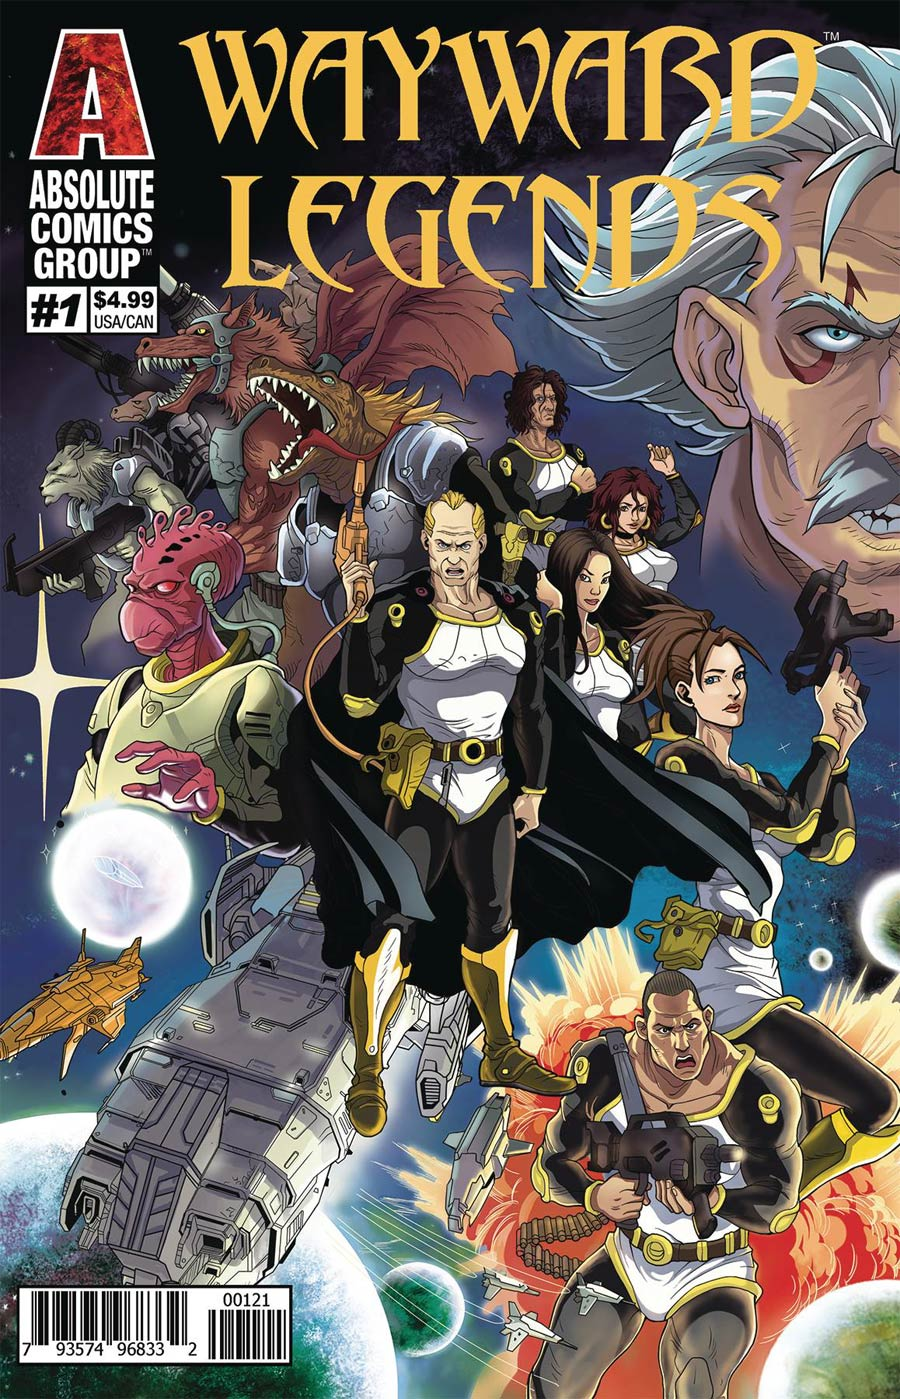 Wayward Legends #1 Cover B Variant Weilin Yang & Youjun Yang Holographic Gold Foil Cover